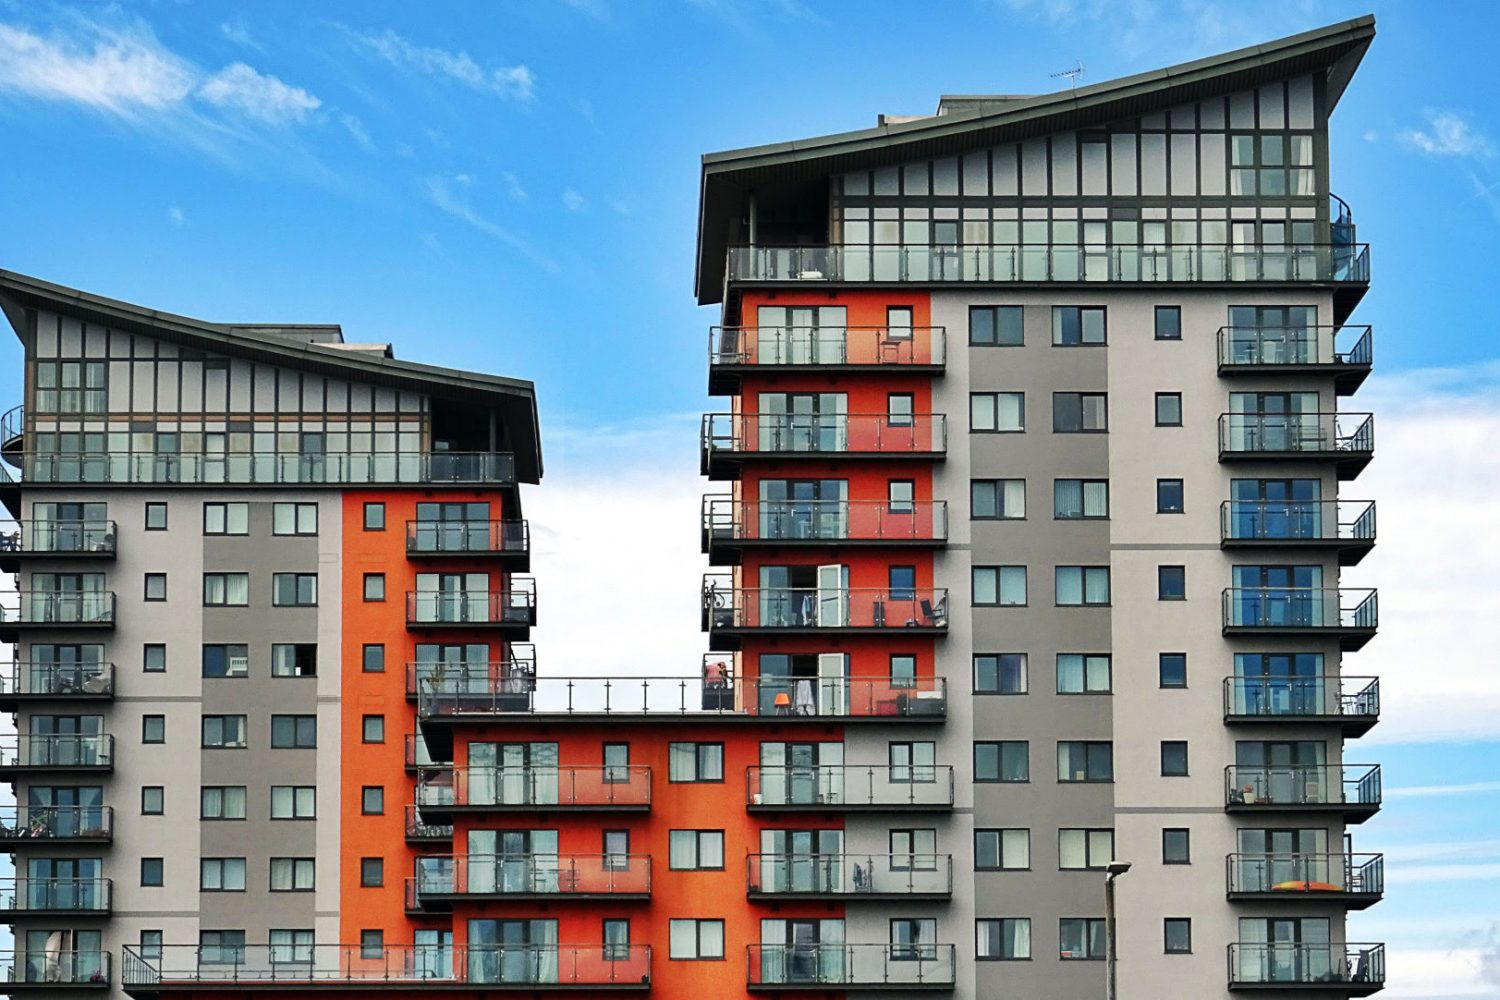 New Build Block of Flats with gray and orange fascias and glass balconies